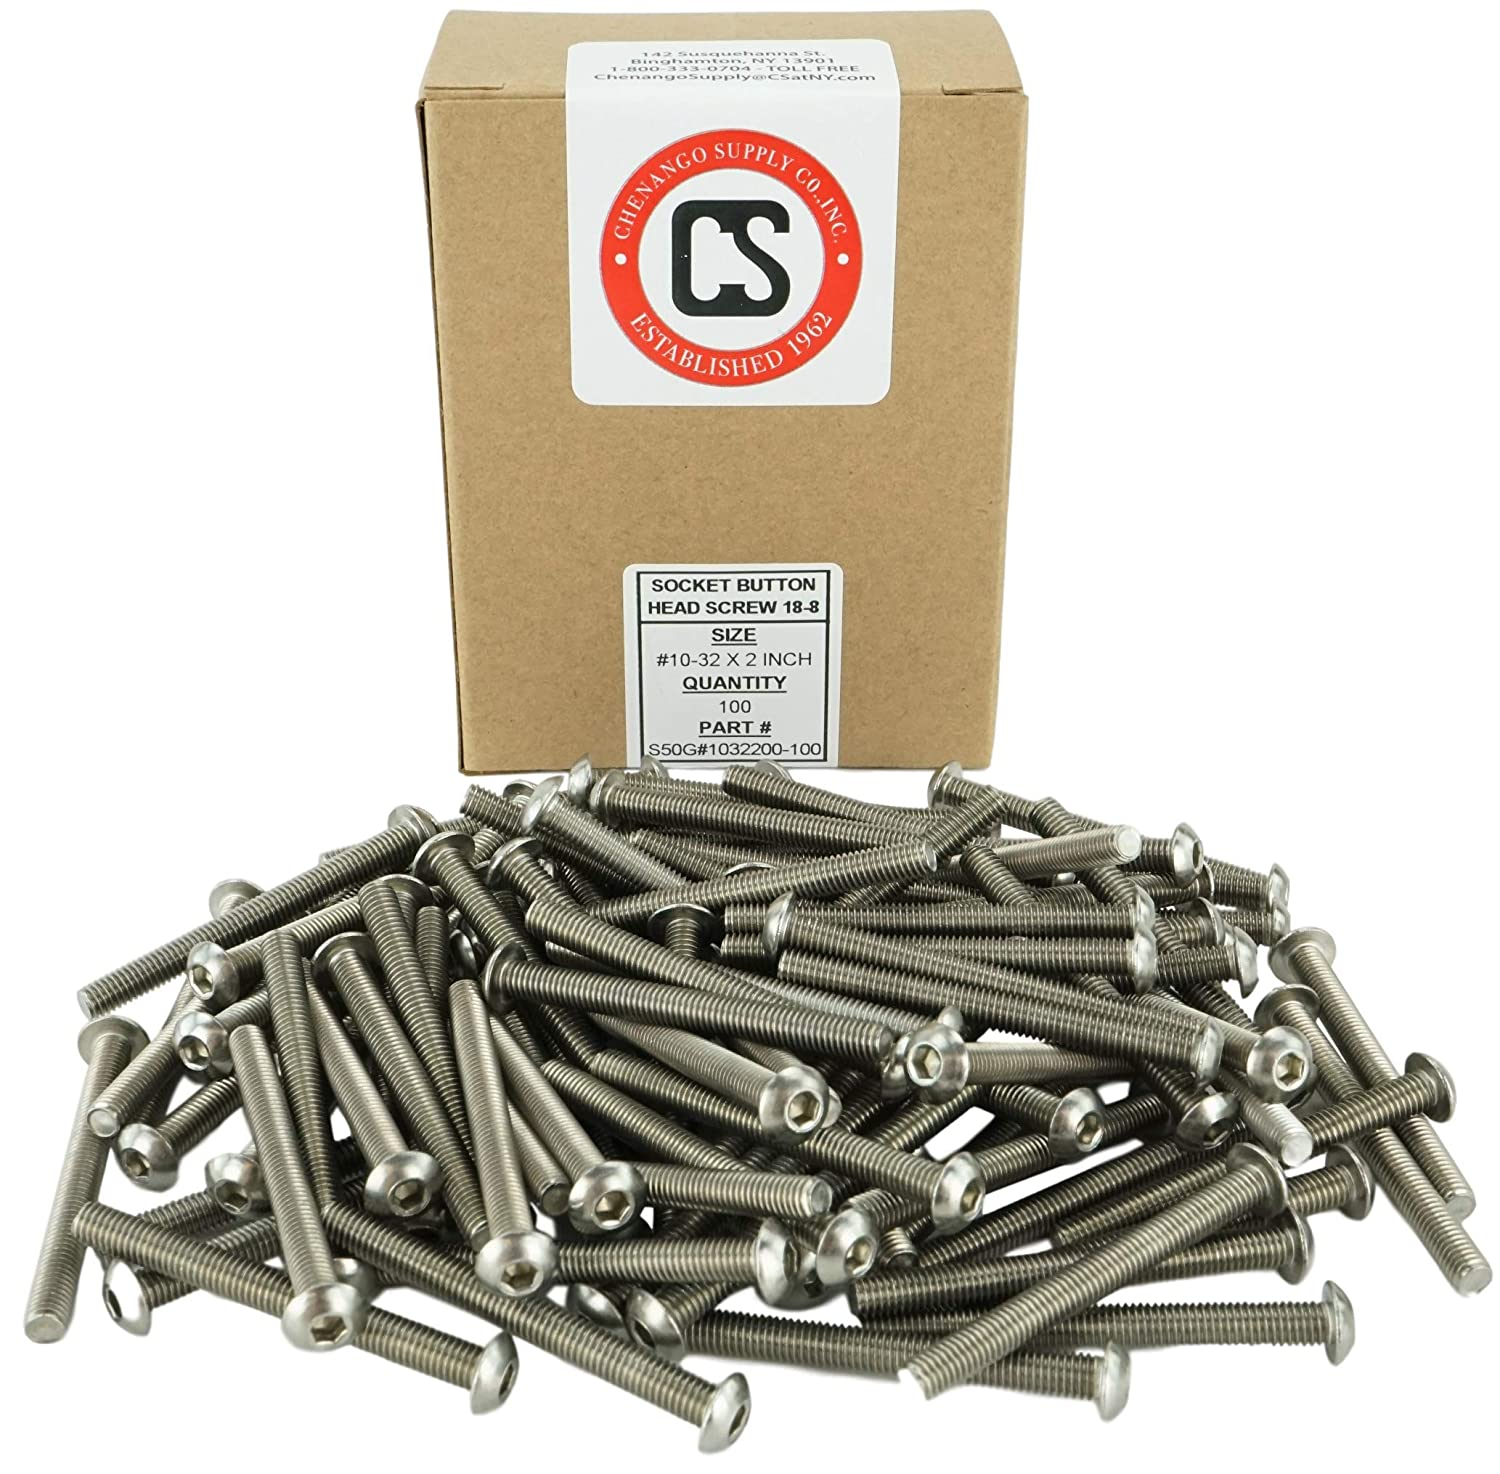 Hex Drive Stainless #10-32 x 2 Socket Button Head Cap Screws Stainless Steel 18-8 Full Thread Machine Thread 1//2 to 2 Available 10-32 x 2